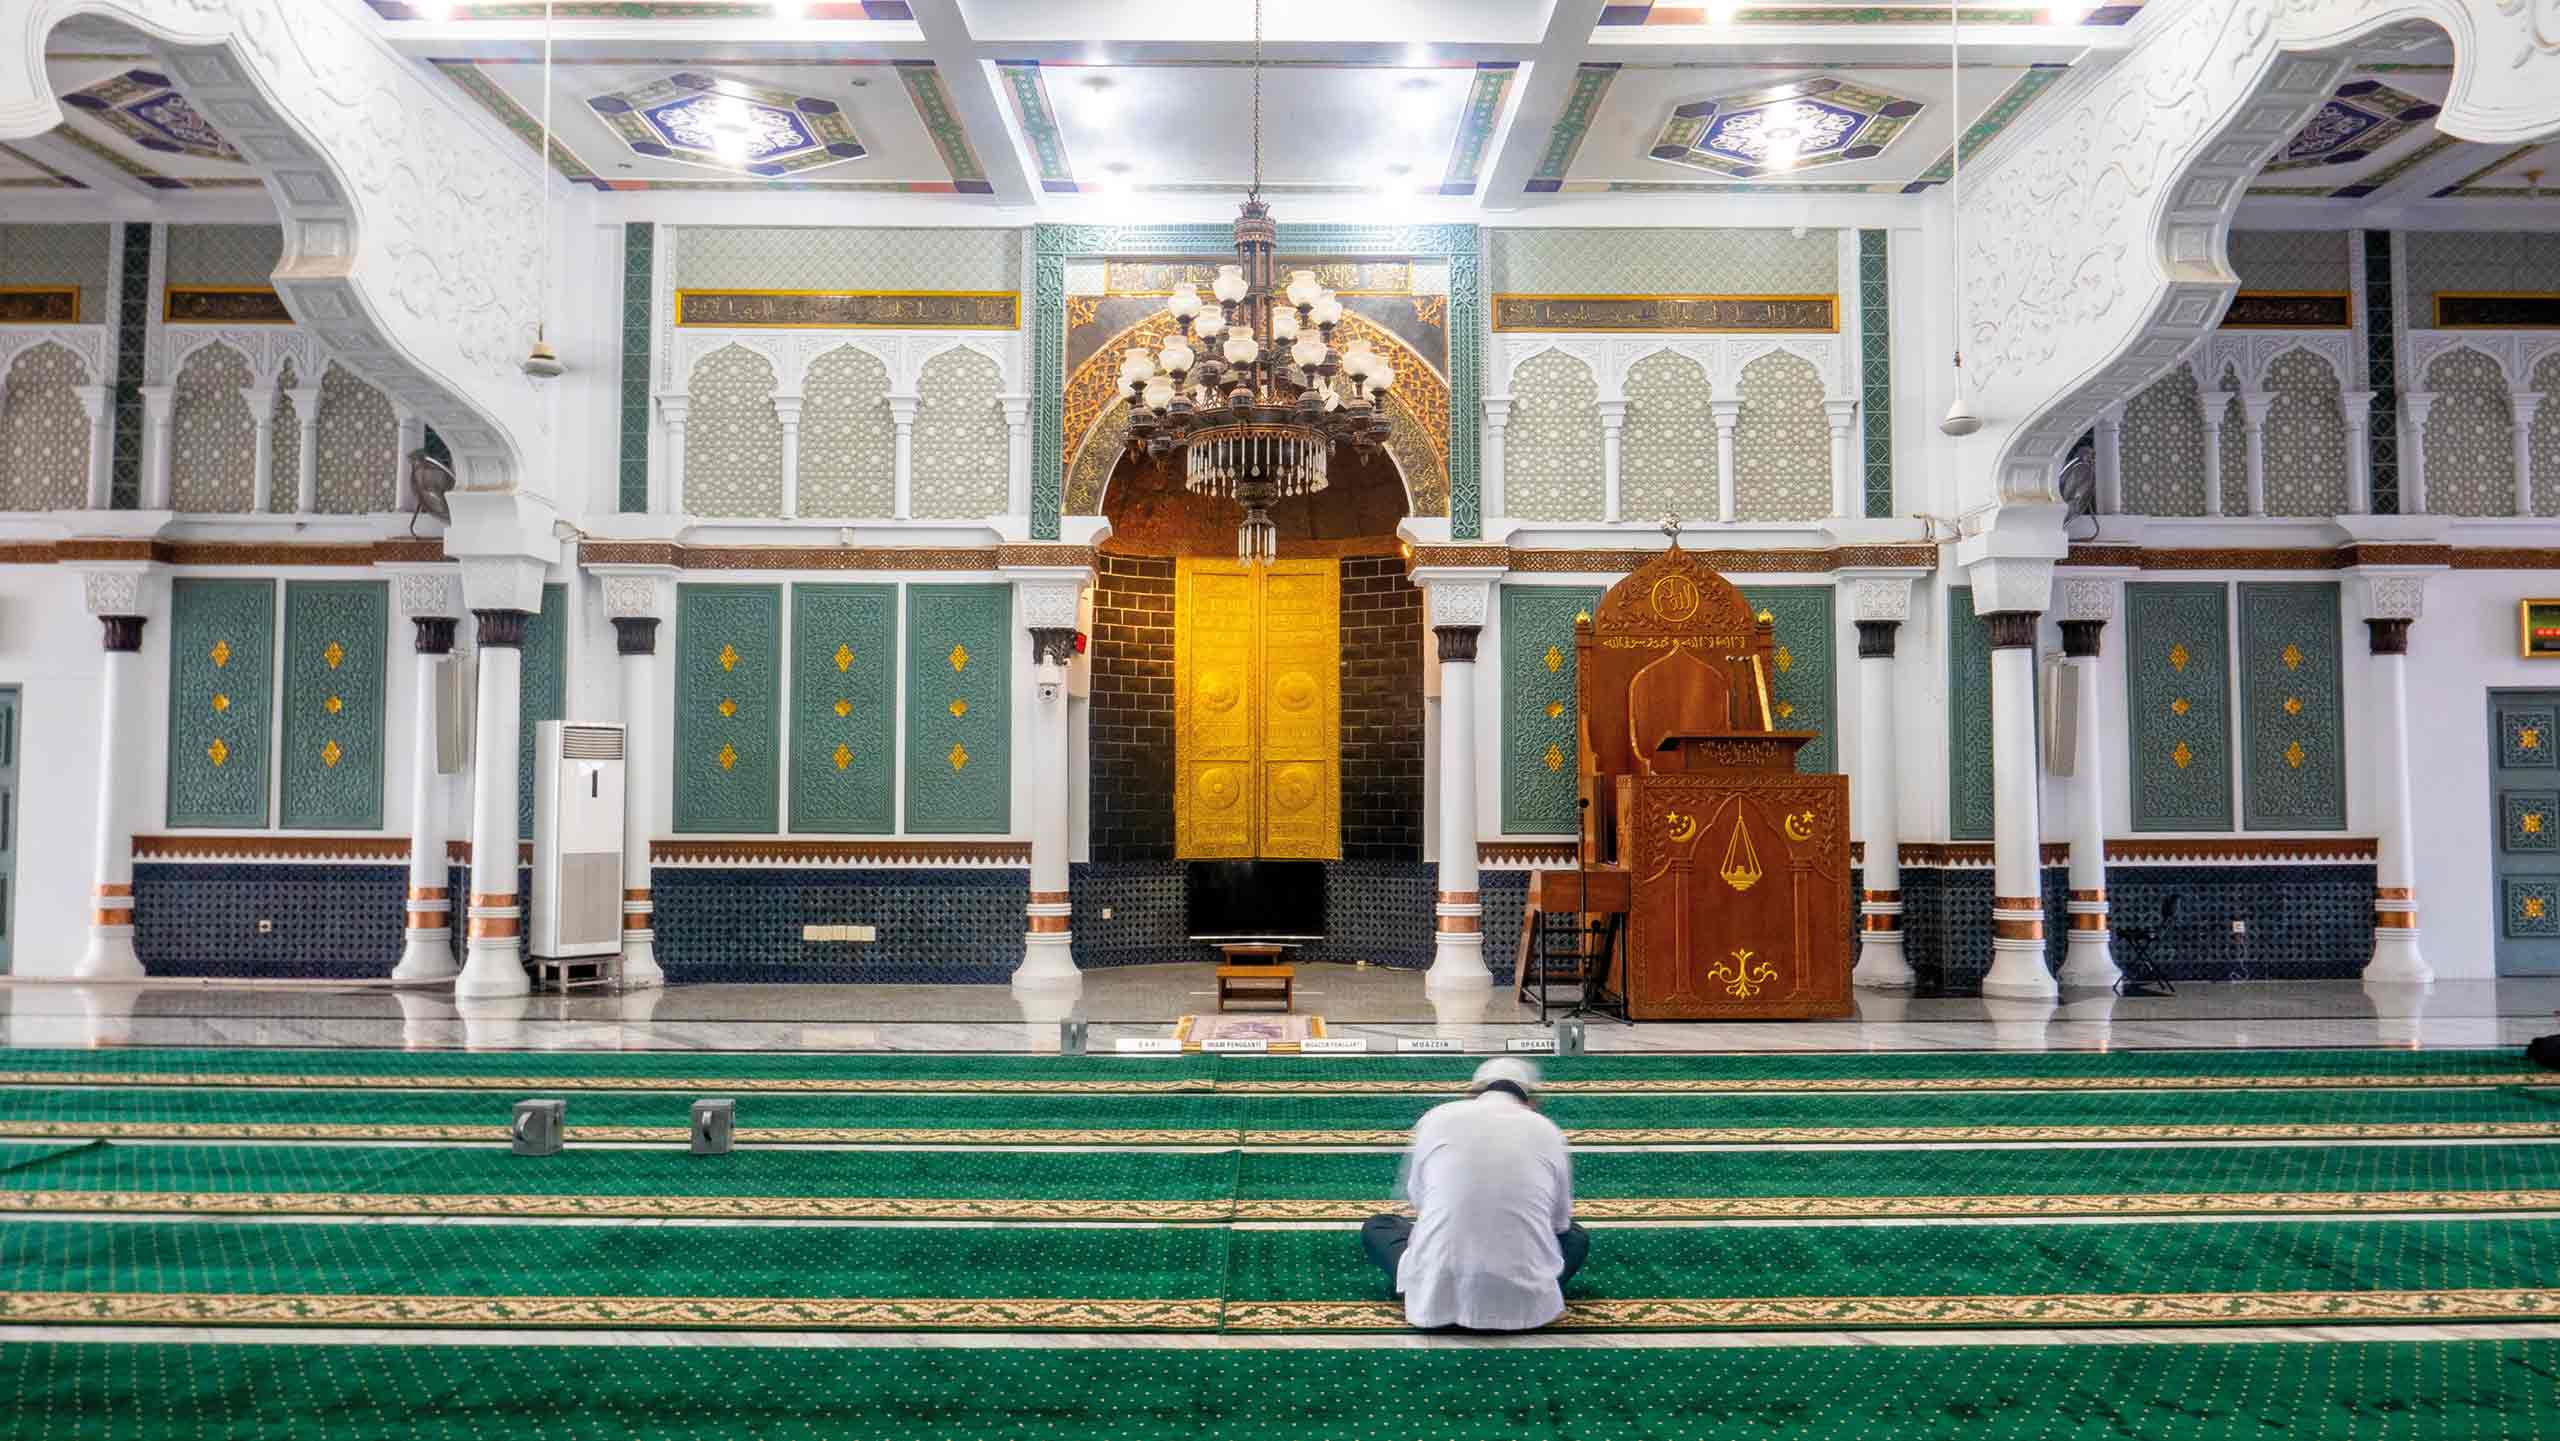 man sitting in empty mosque with decorative walls